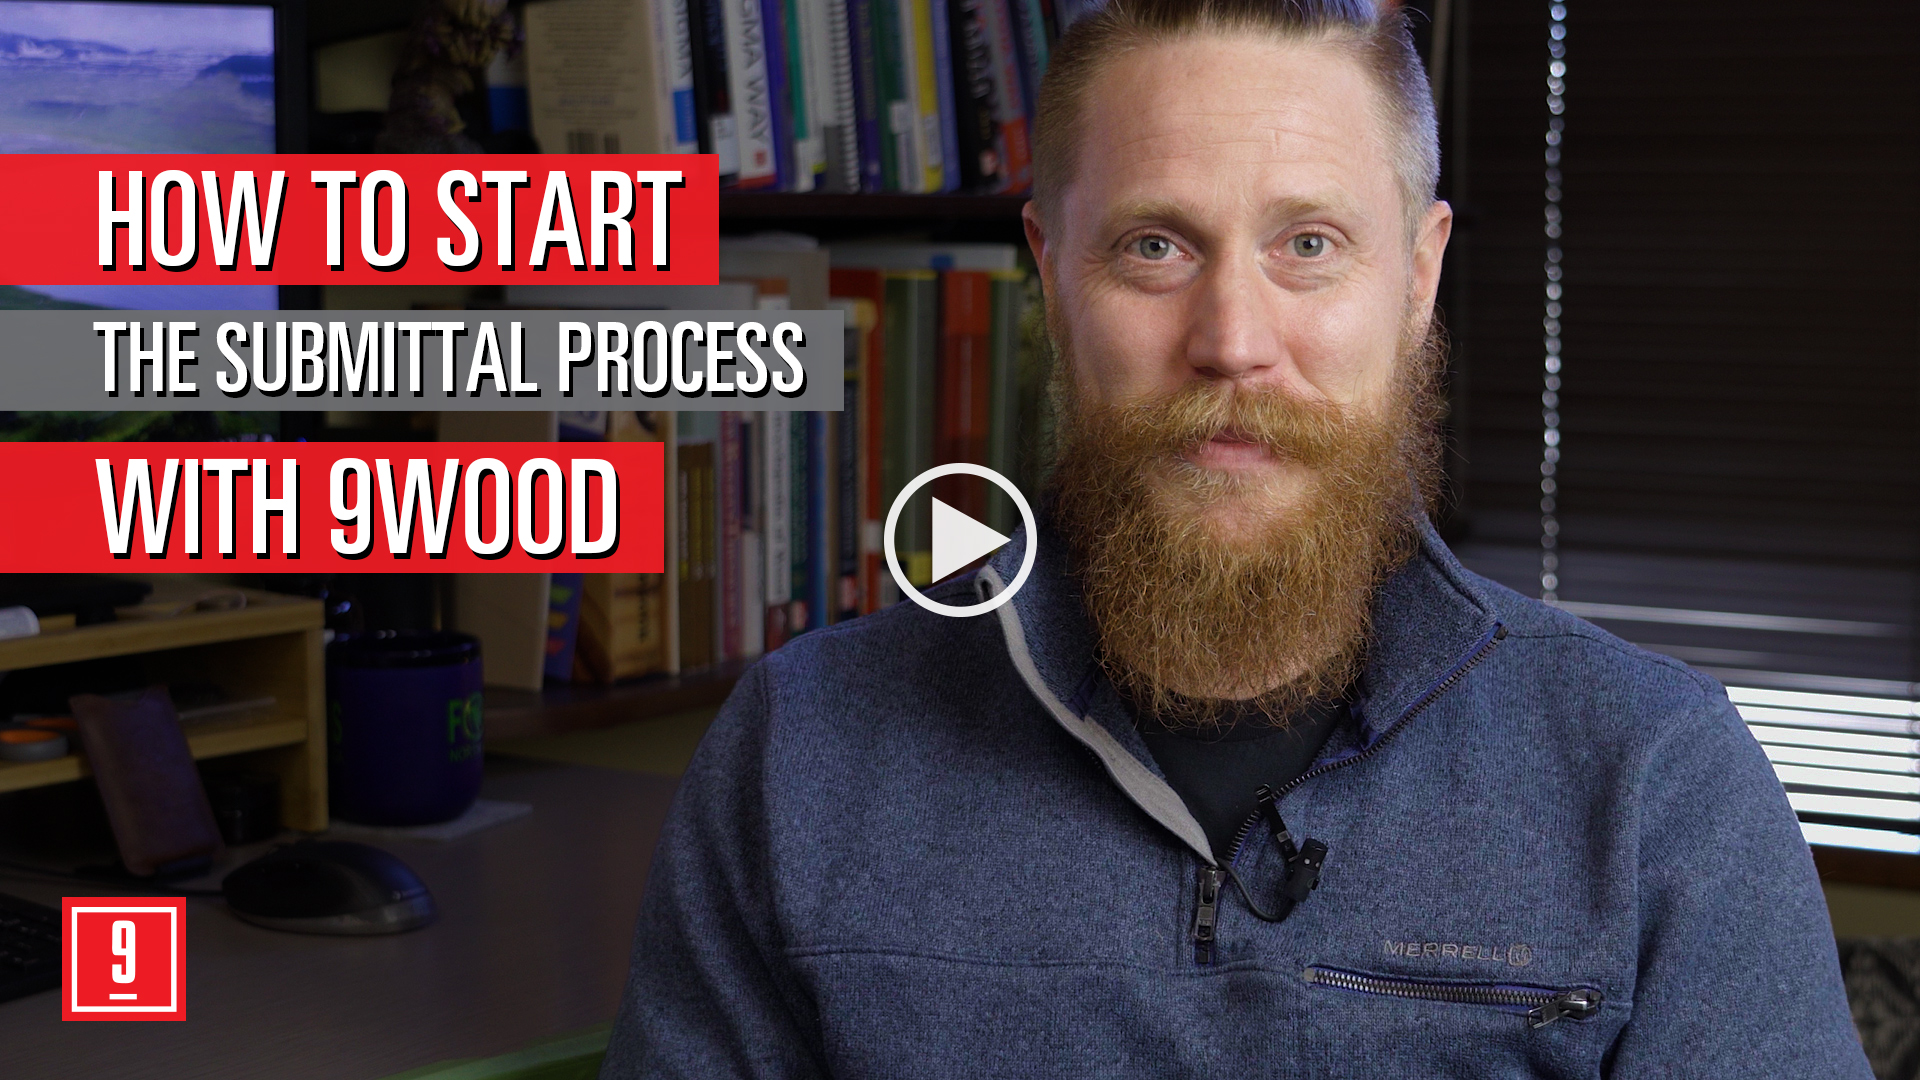 How to start the submittal process with 9Wood